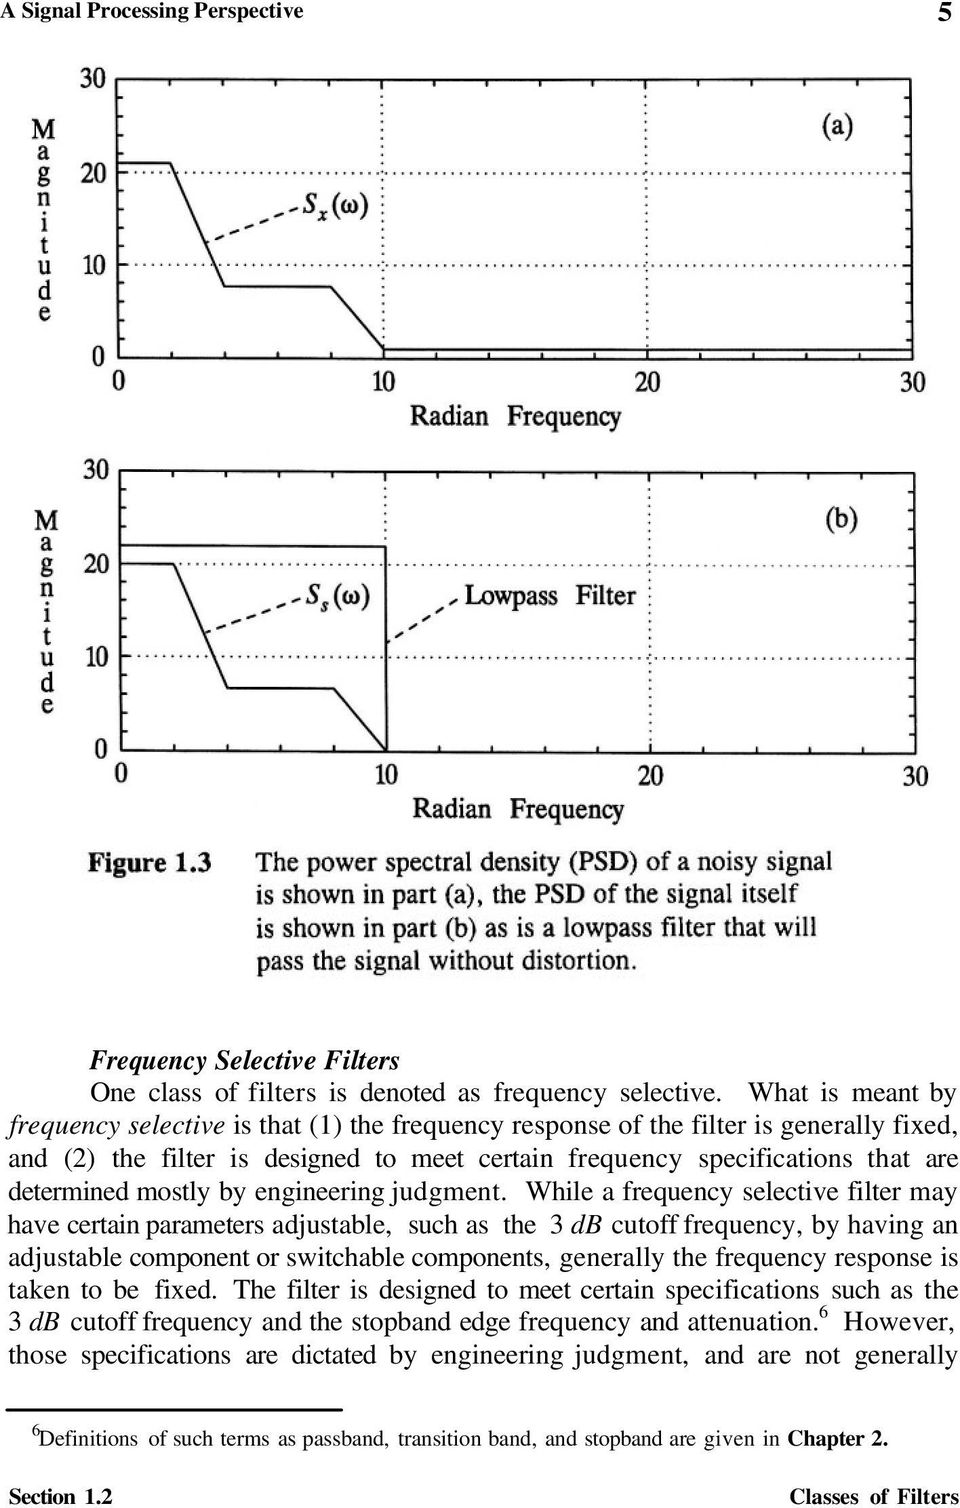 Design And Analysis Of Analog Filters A Signal Processing Bessel Filter Frequency Response On Electronic Schematic Section 12 Classes Mostly By Engineering Judgment